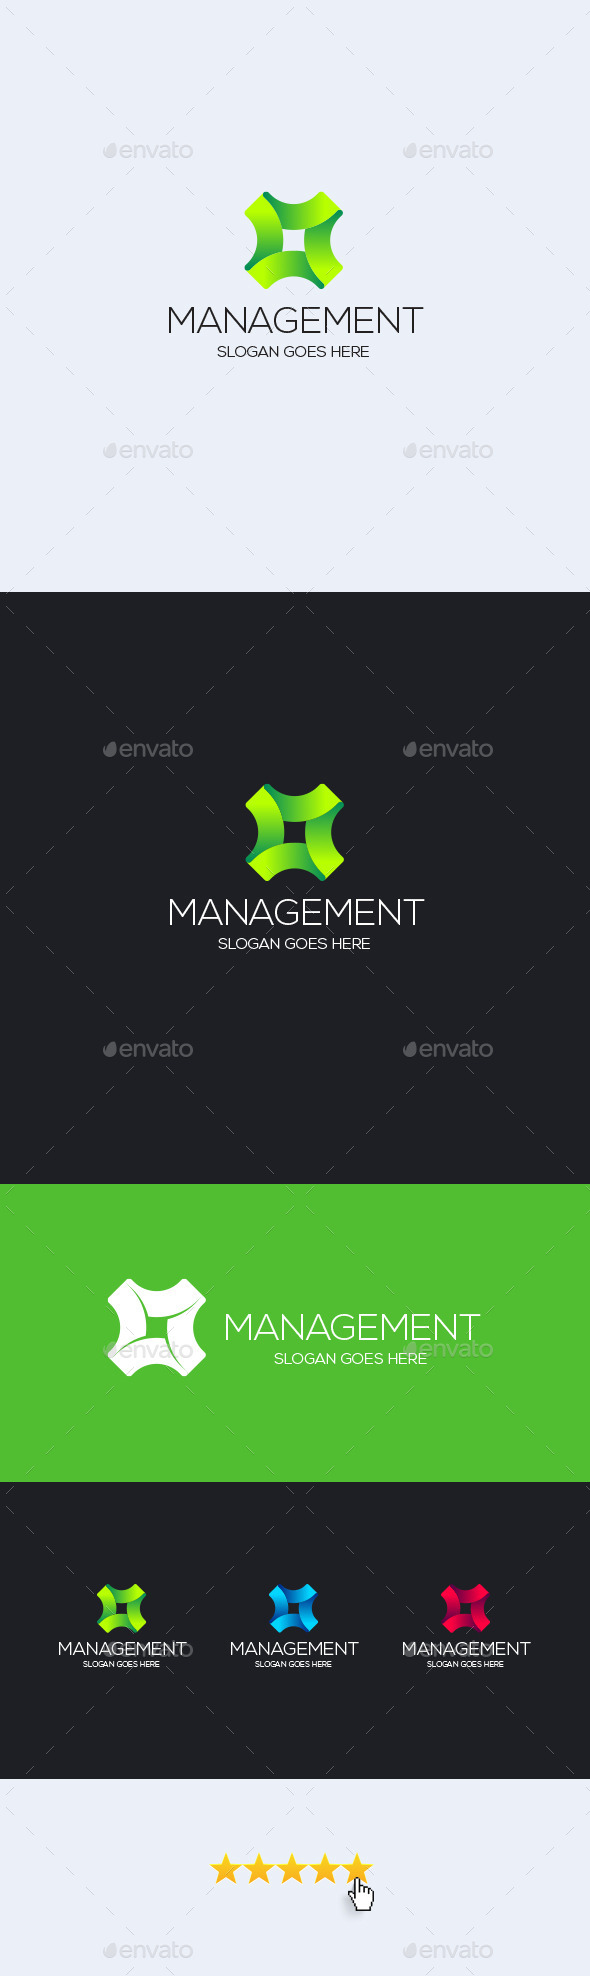 GraphicRiver Management Logo Template 11919948